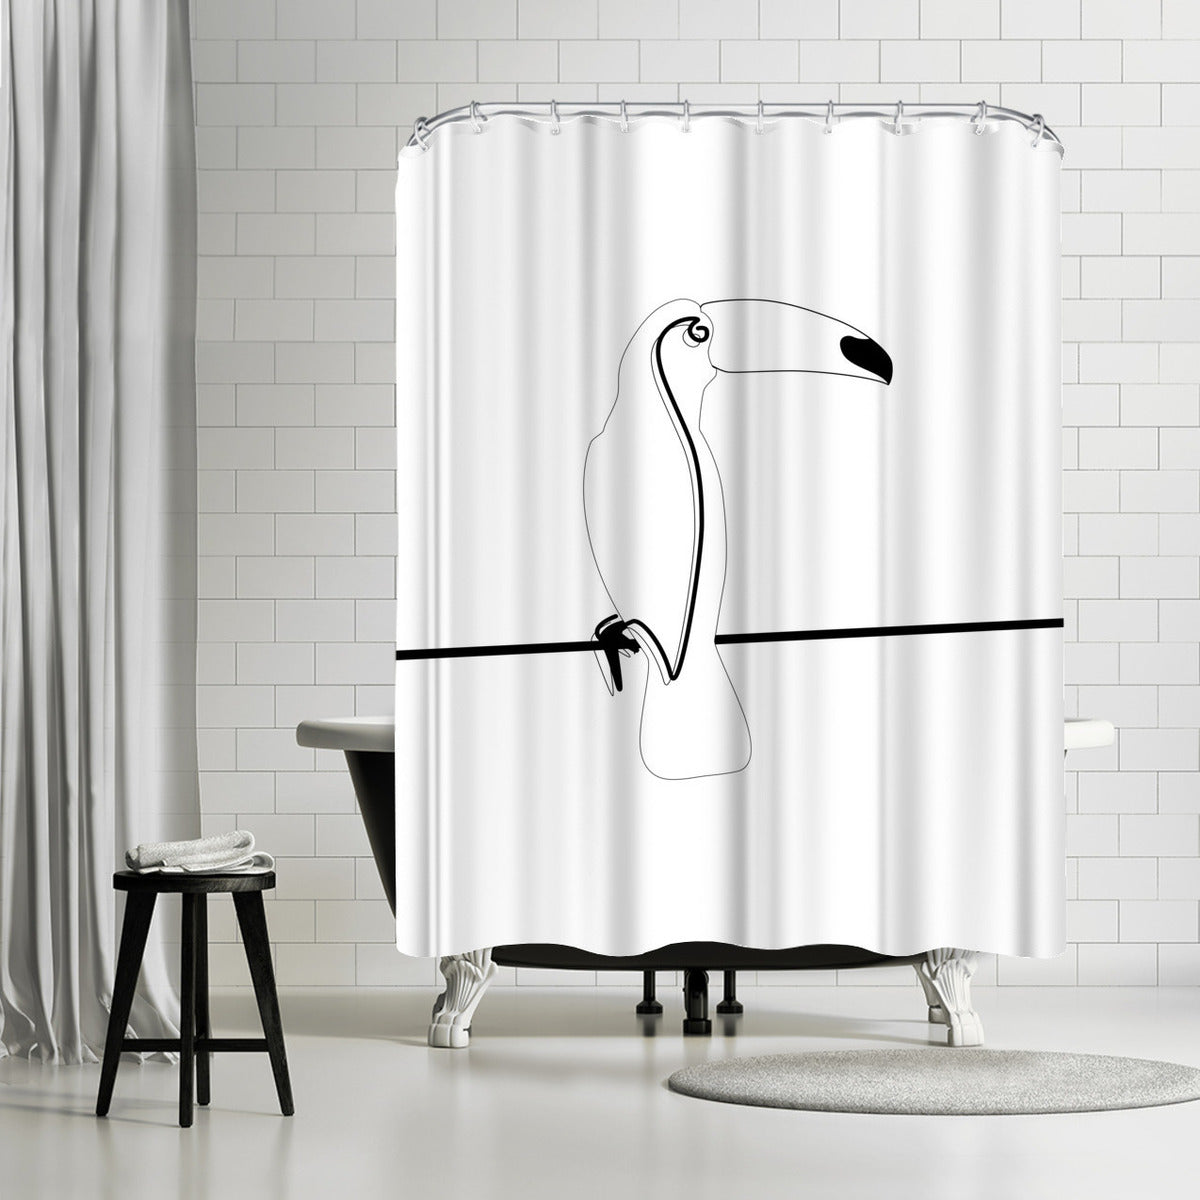 Toco Toucan by Explicit Design Shower Curtain - Shower Curtain - Americanflat